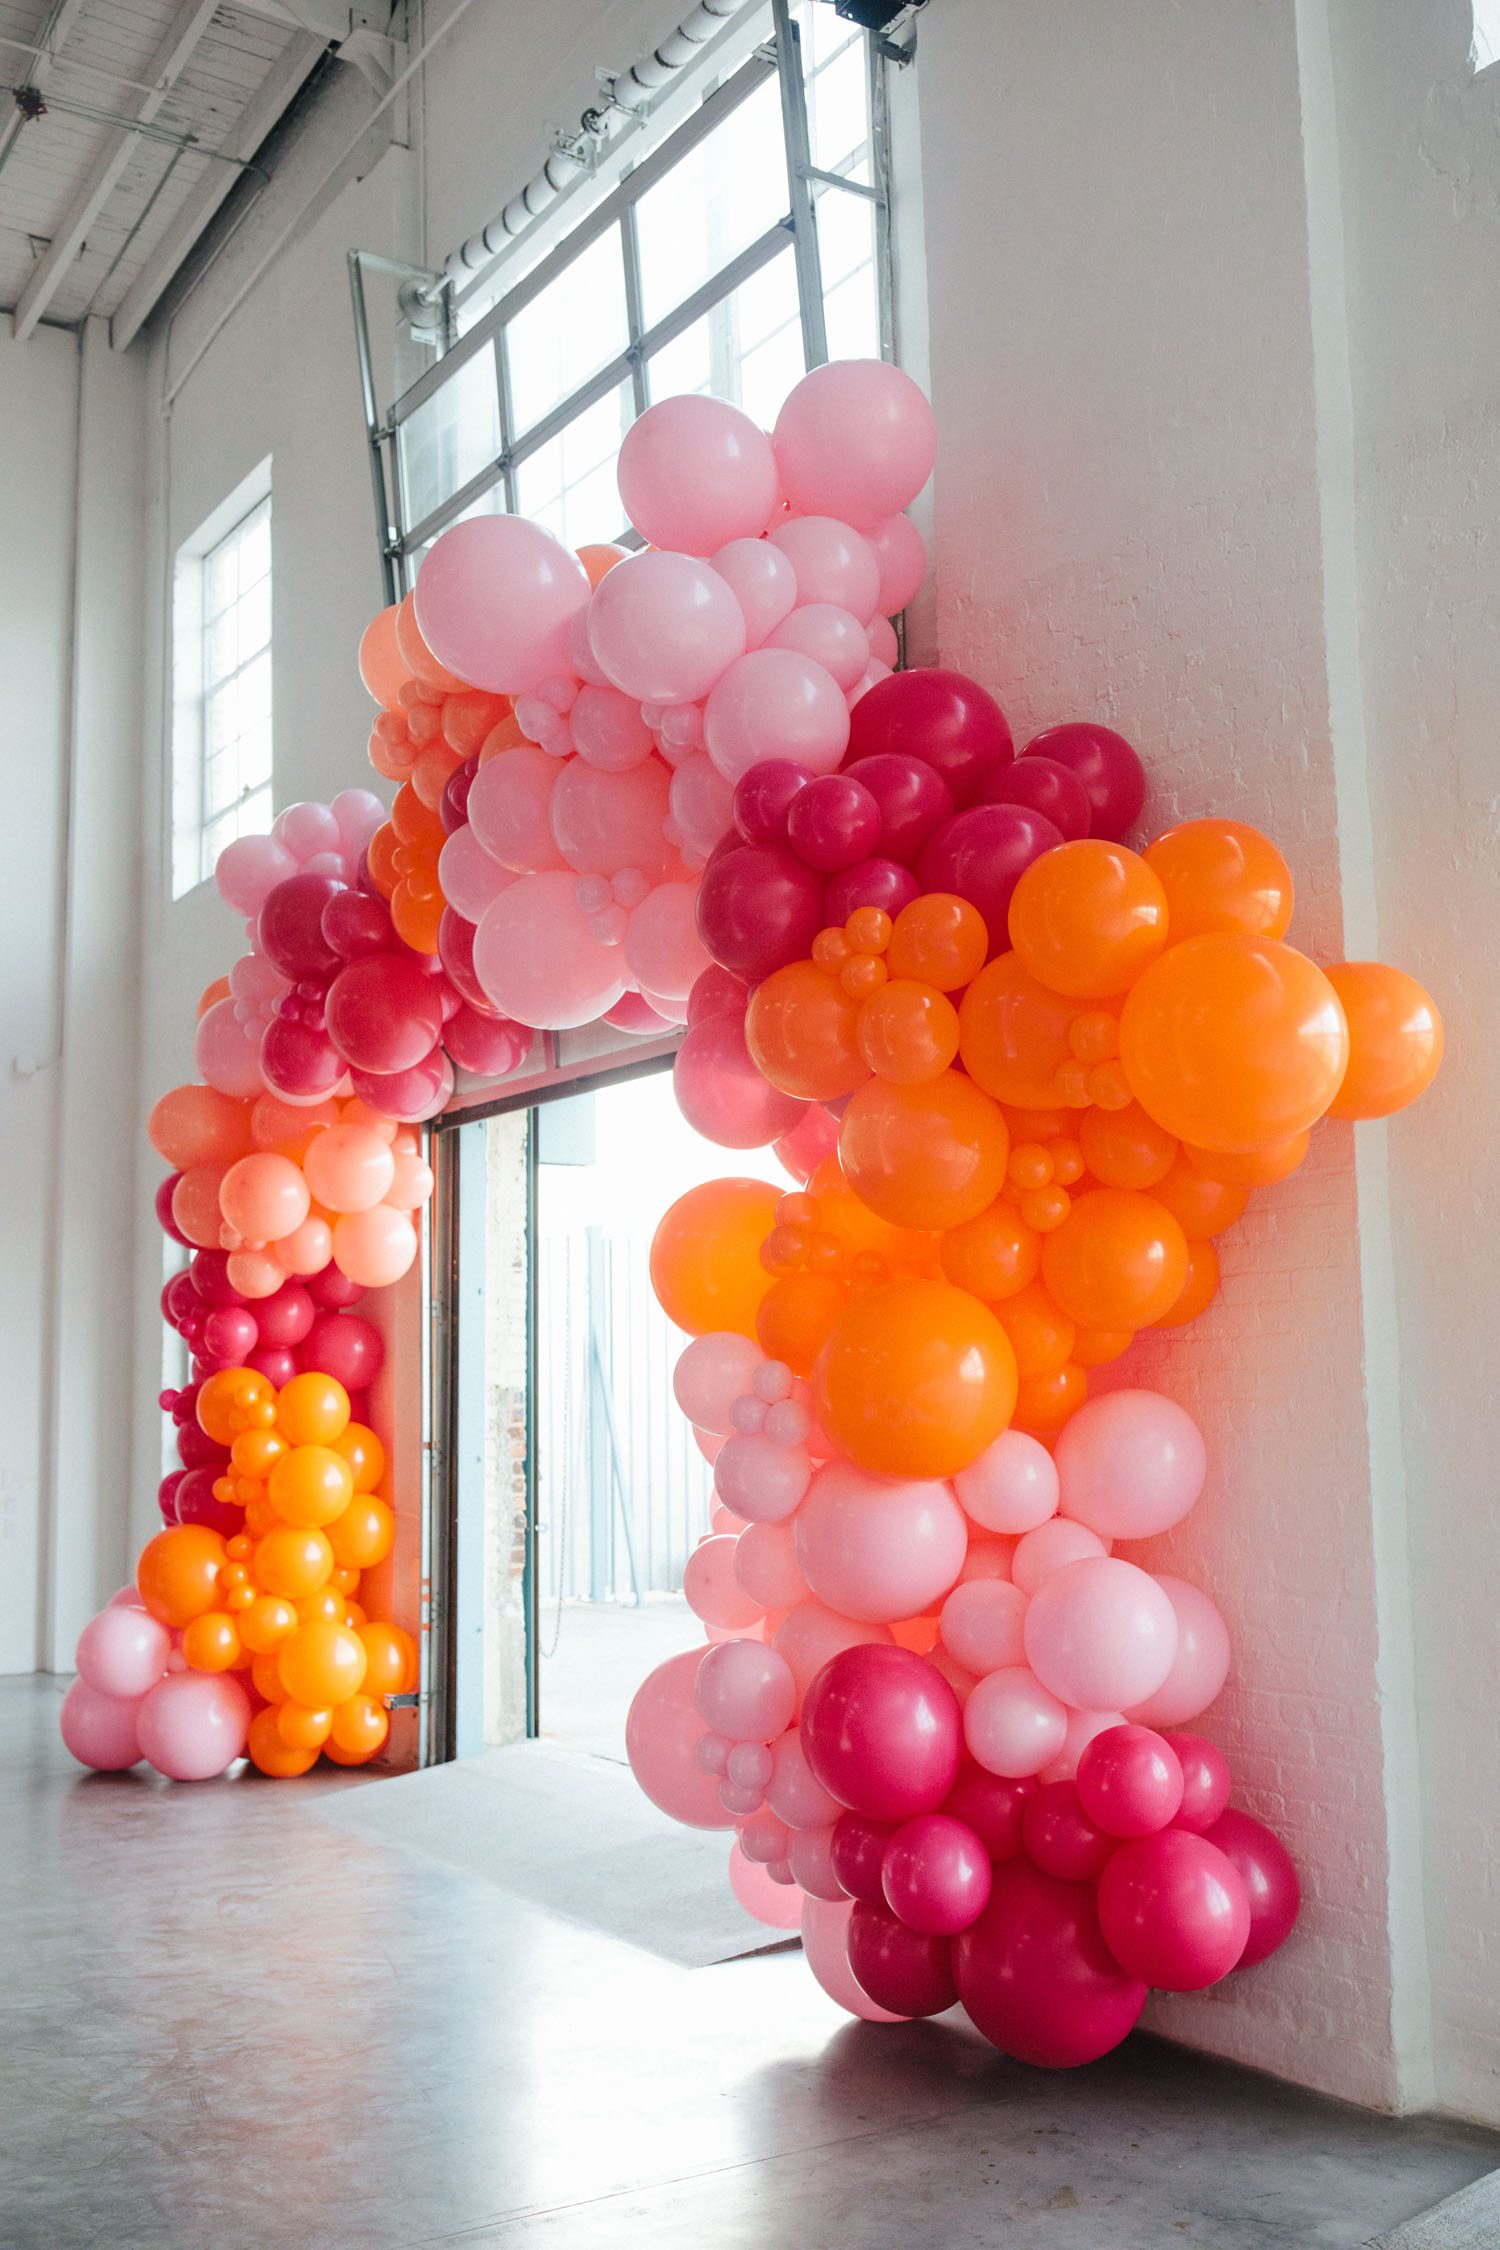 Pink and Orange Balloon Installation